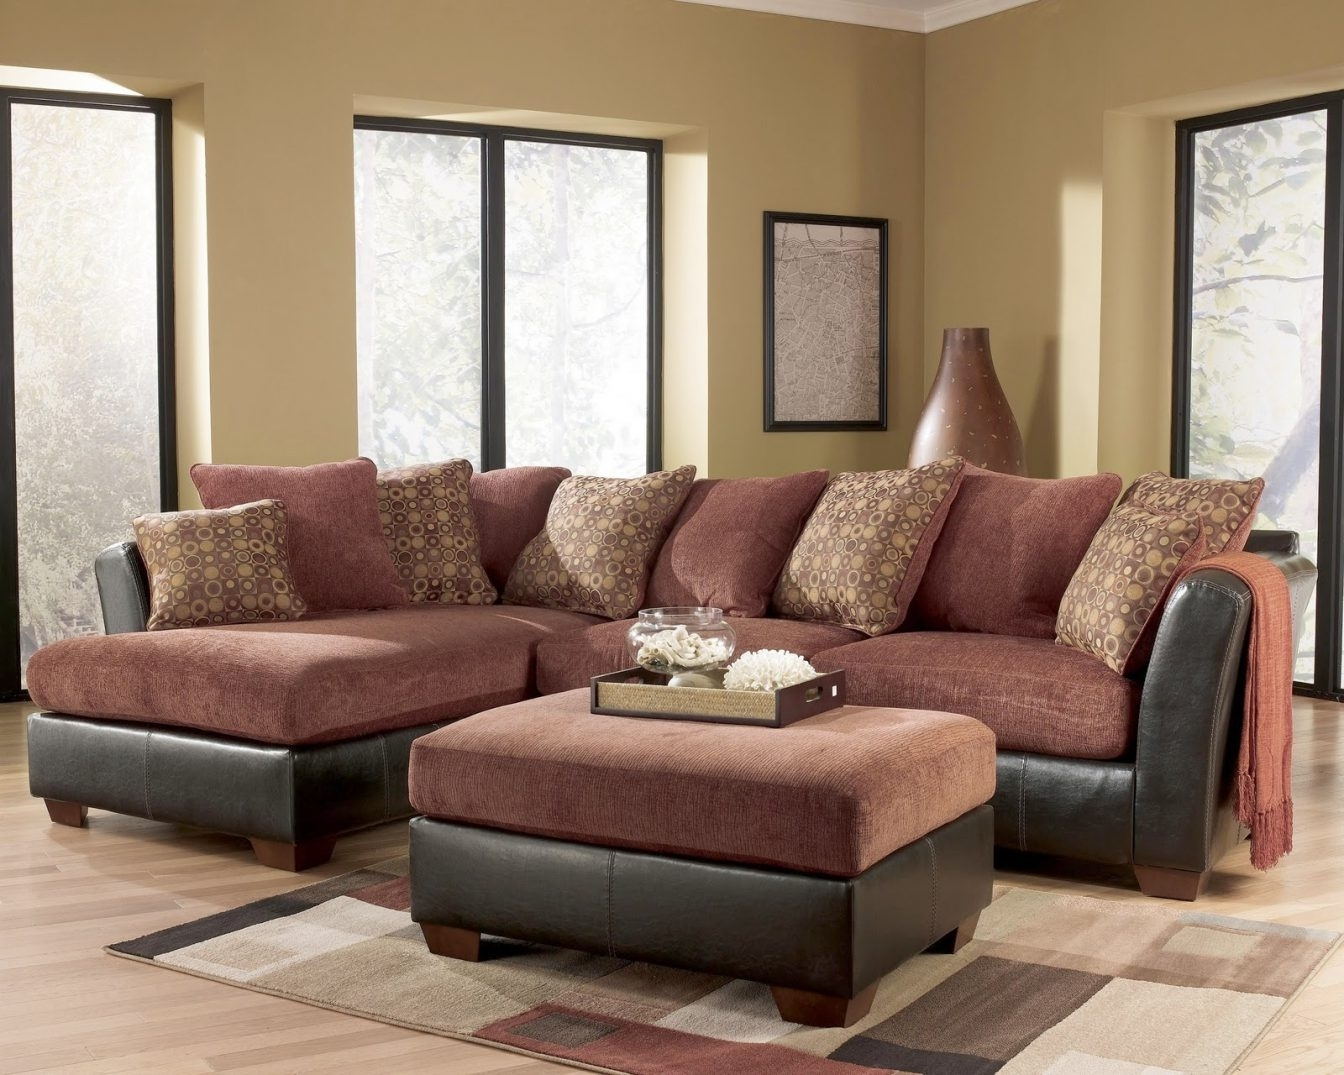 Ashley Furniture Sectional Sofa #2 Ashley Furniture – Larson 31400 With Regard To Most Current Royal Furniture Sectional Sofas (View 13 of 15)